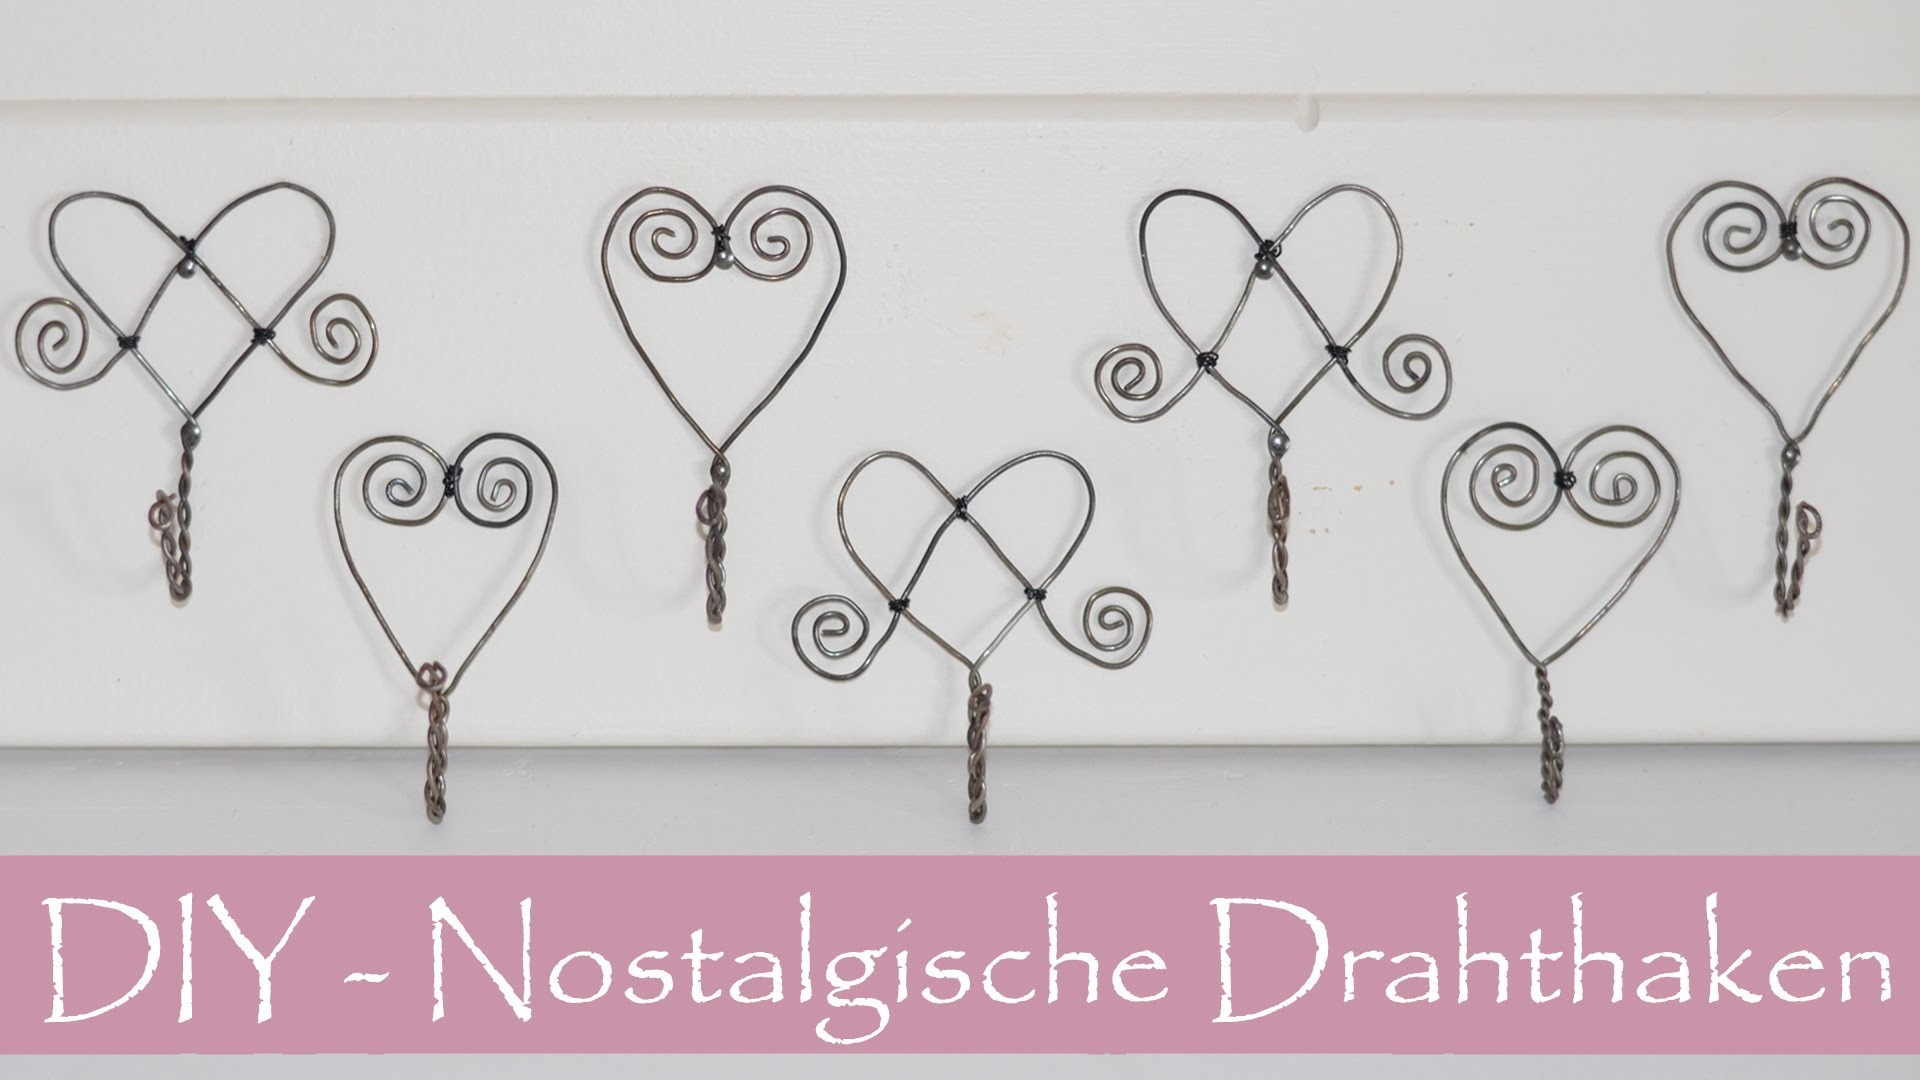 diy nostalgische haken aus draht luffarsl jd schwedische drahtbiegekunst my crafts and diy. Black Bedroom Furniture Sets. Home Design Ideas